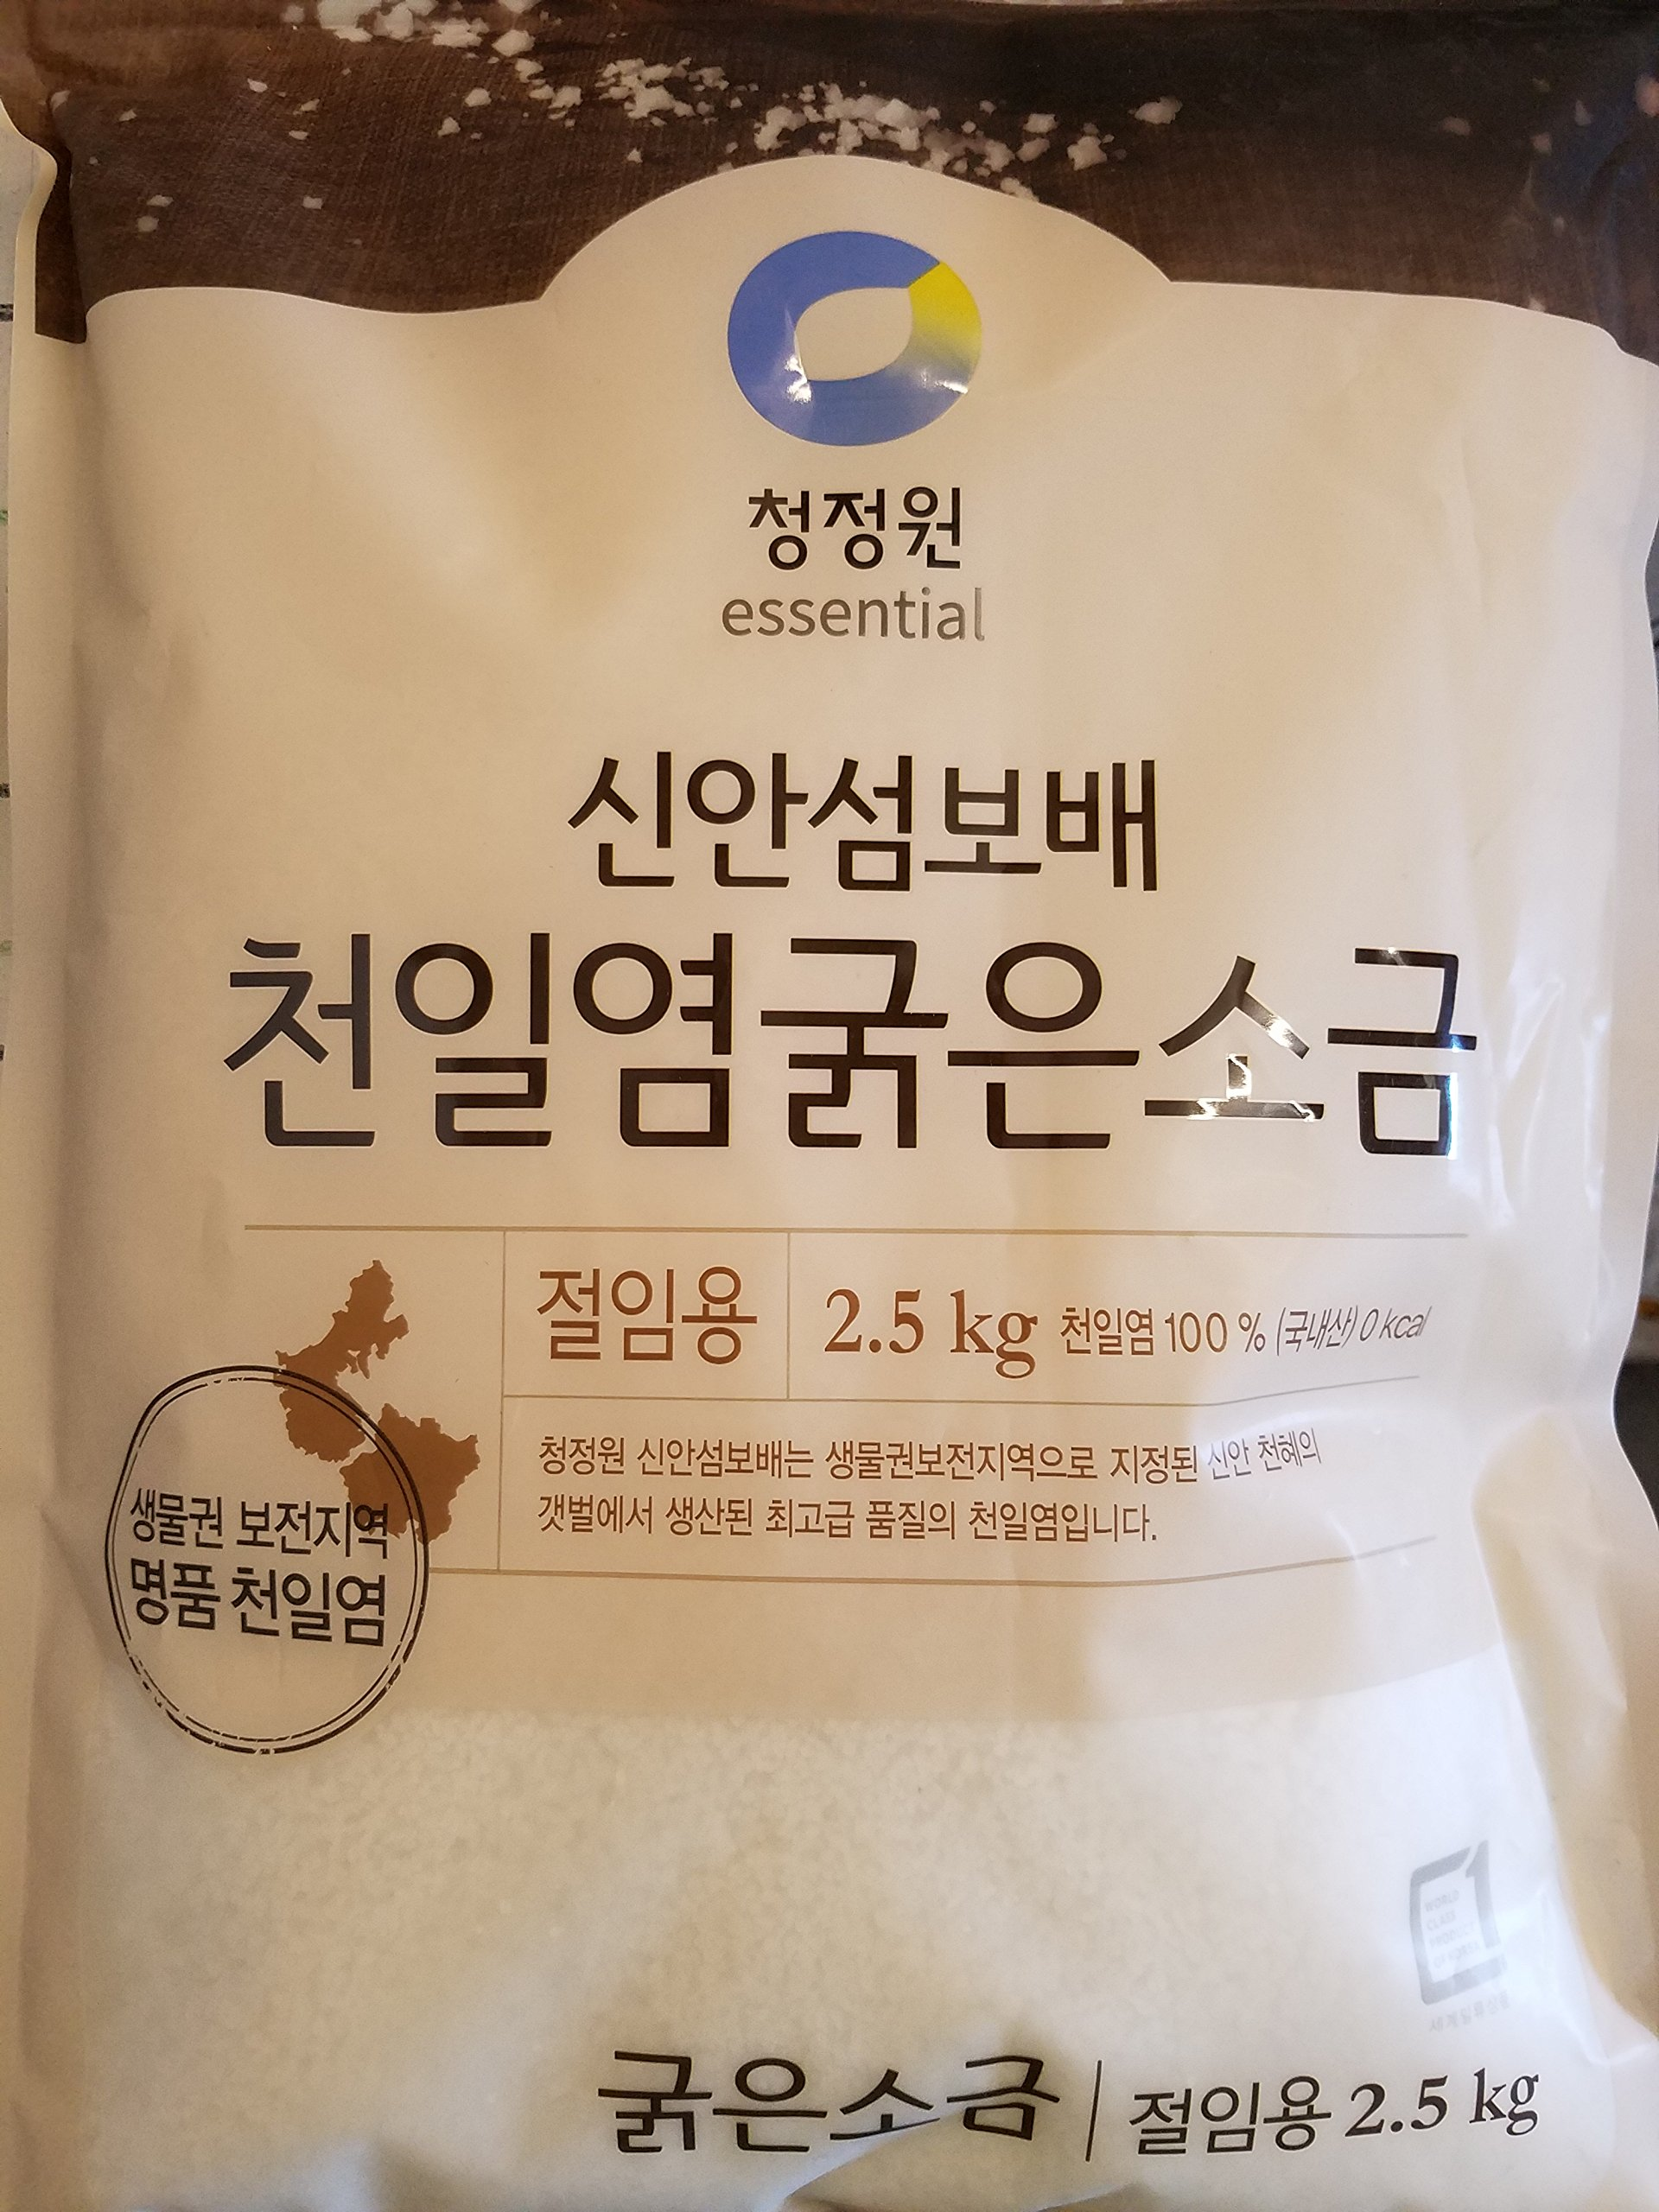 Natural Premium Sea Salt for Kimchi Brining: the Jewel of Sinan Island by Chung-Jung-One (5.5 LBS)